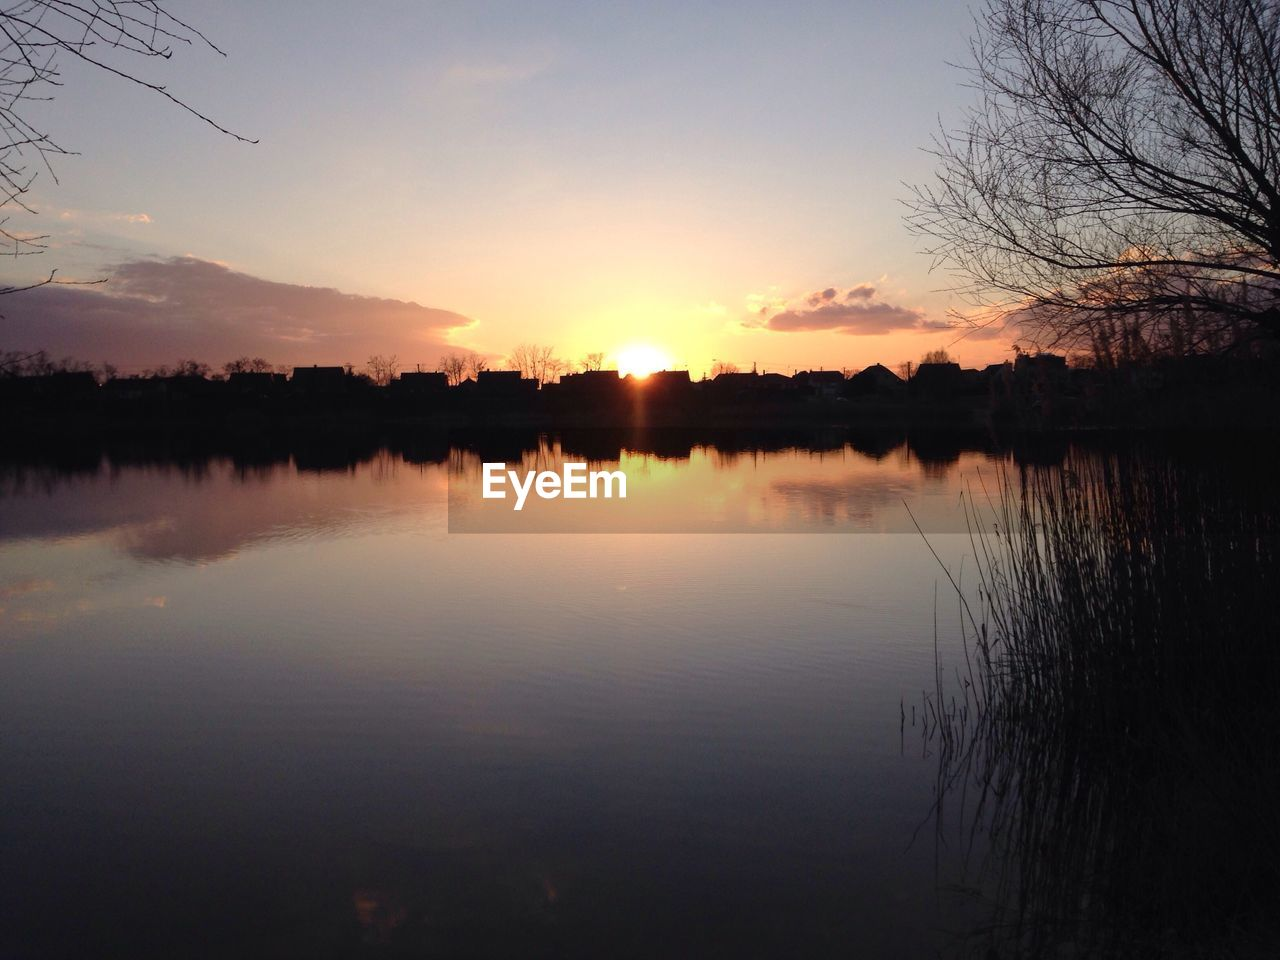 sunset, reflection, beauty in nature, nature, tranquil scene, water, scenics, lake, tranquility, idyllic, silhouette, sky, orange color, standing water, non-urban scene, outdoors, no people, tree, waterfront